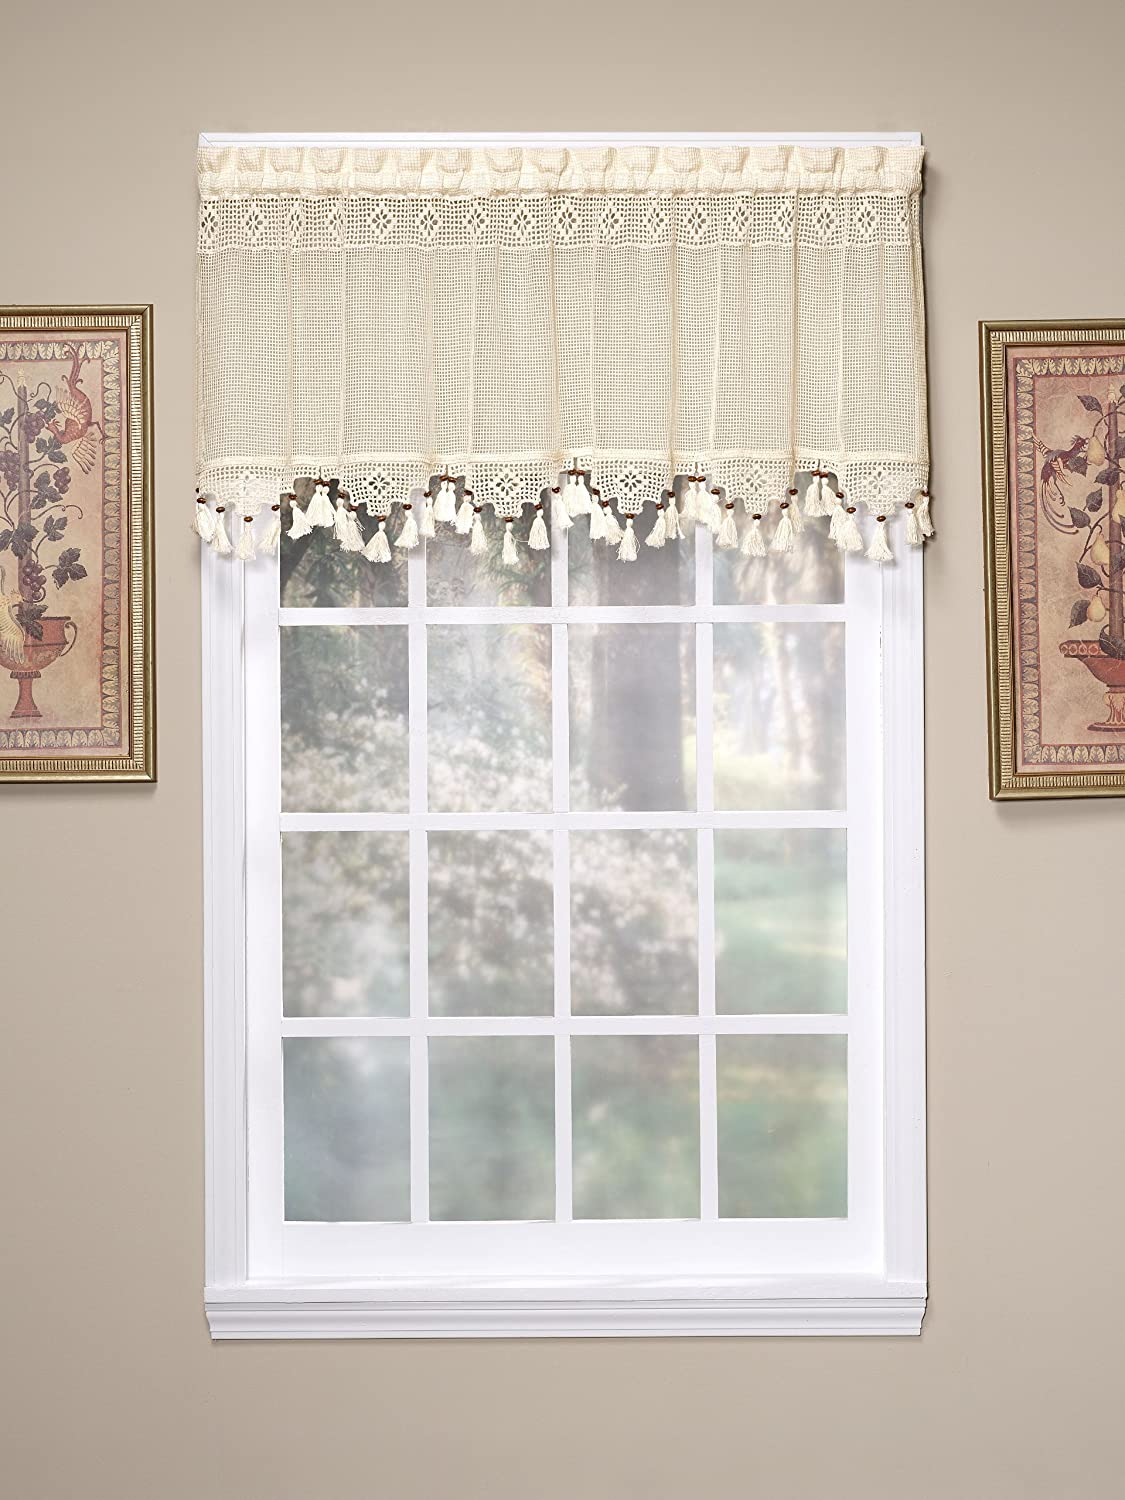 Amazon.com: Todayu0027s Curtain Gettysburg Knitted 20 Inch Crochet With Beaded  Tassel Valance, Ecru: Home U0026 Kitchen